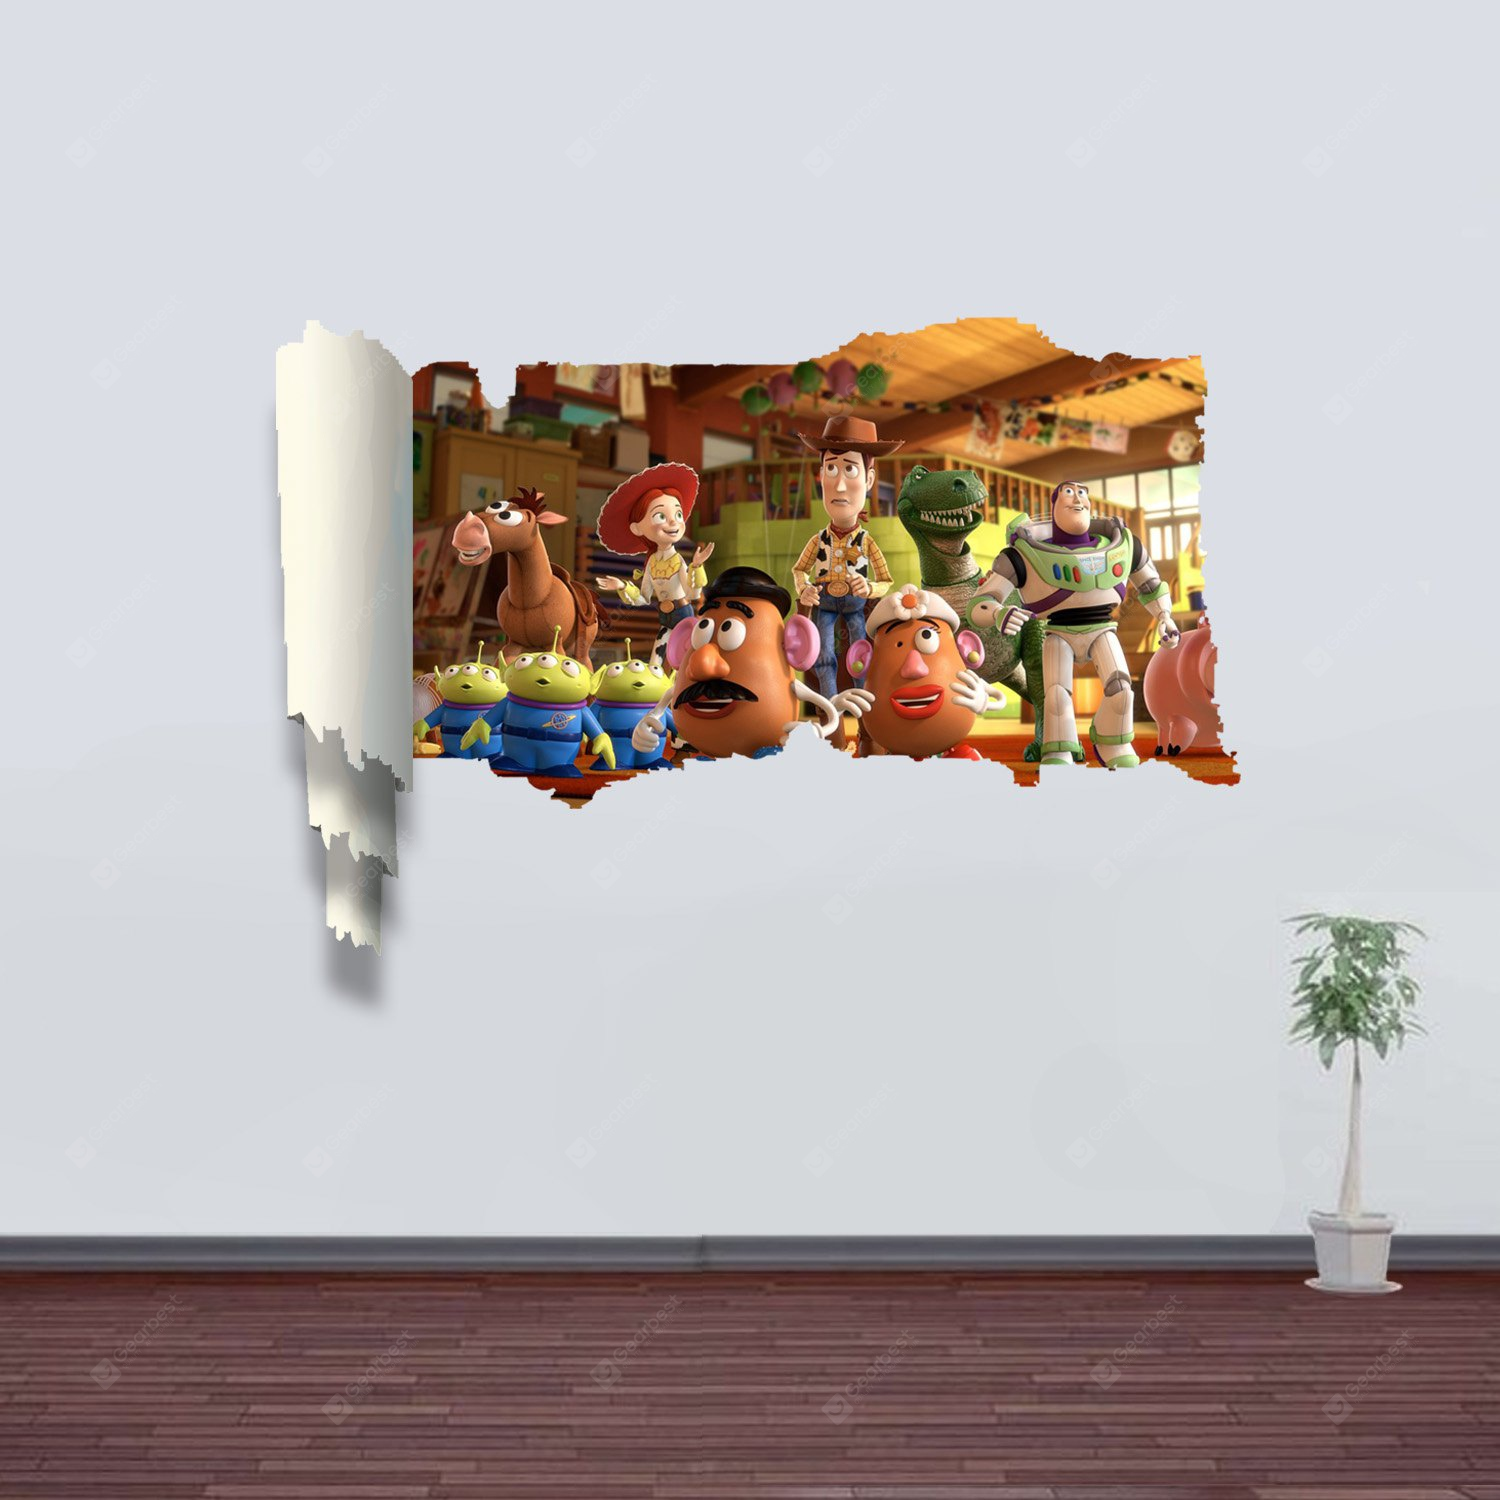 Toy Story 3d Wall Light : Toy Story Pattern Home Appliances Decoration 3D Wall Sticker Reviews Best Home Decor Gadgets ...